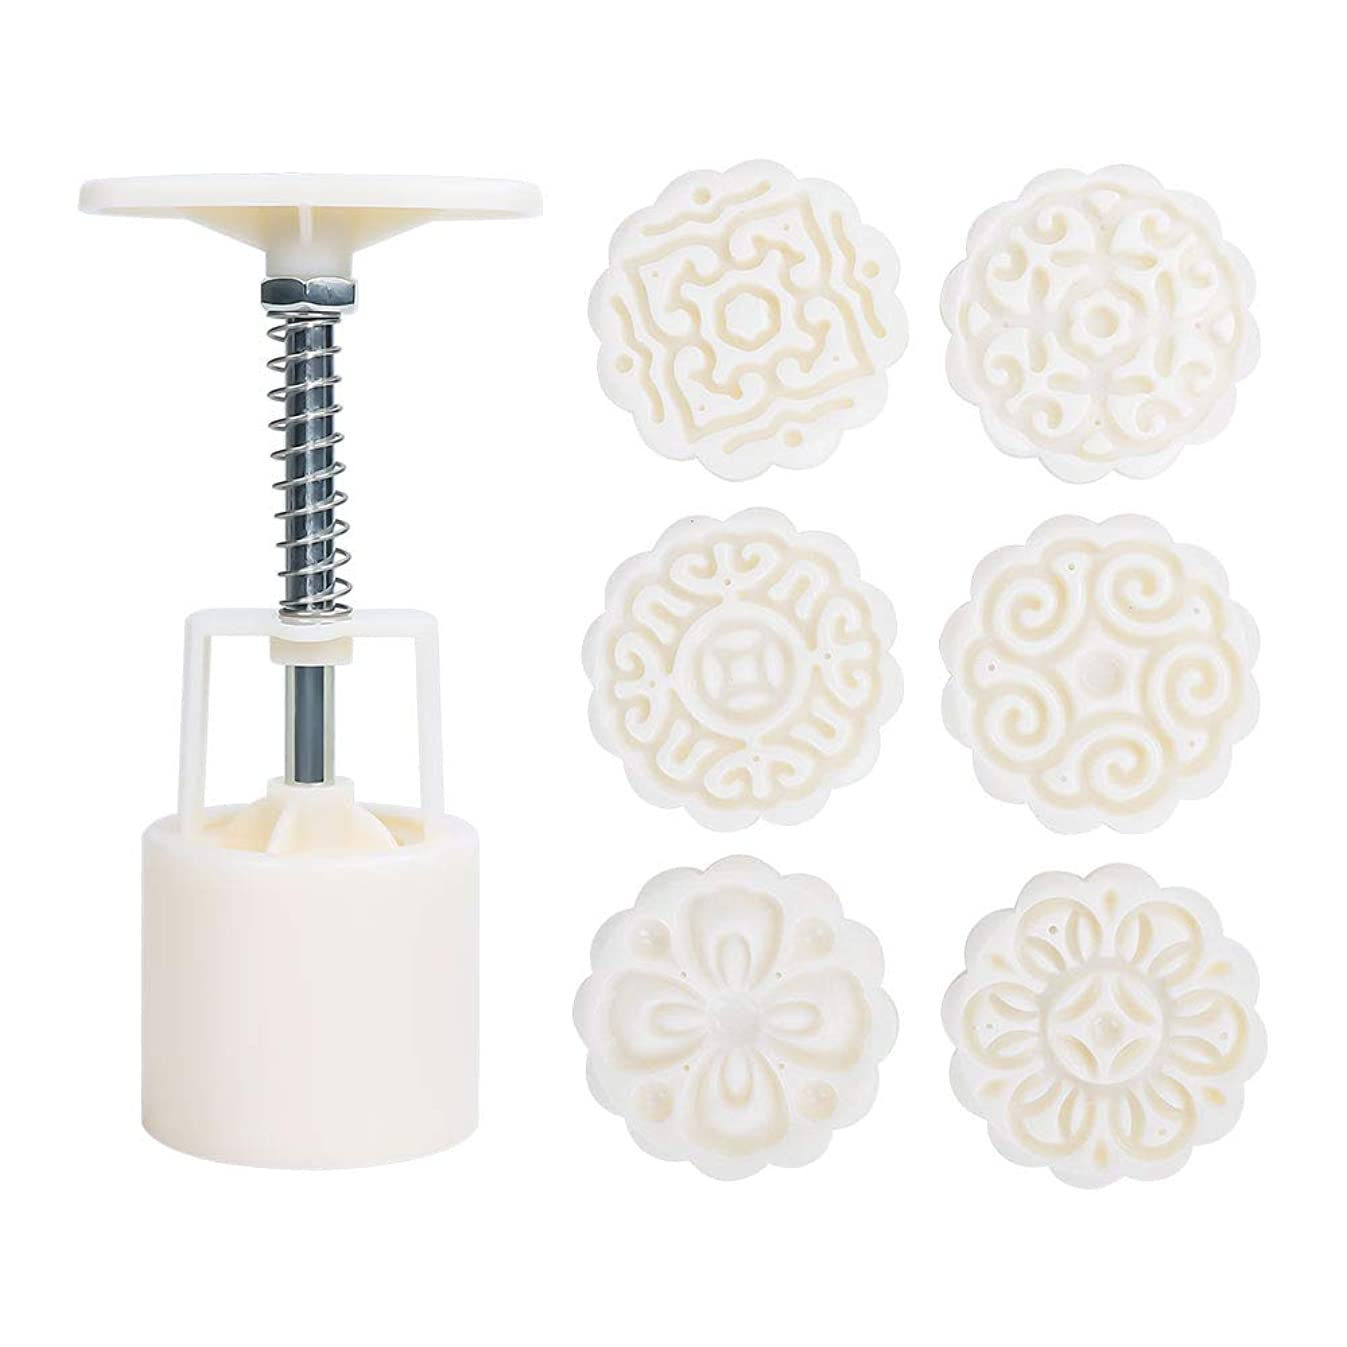 Lahsary Cookie Stamp, 50g Mooncake Mold with 6 Stamps, Flowers Design Cookie Stamp Moon Cake Mold Stamps - Mid Autumn Festival Cookies Cutters - DIY Decoration Mooncake Press Molds (White)